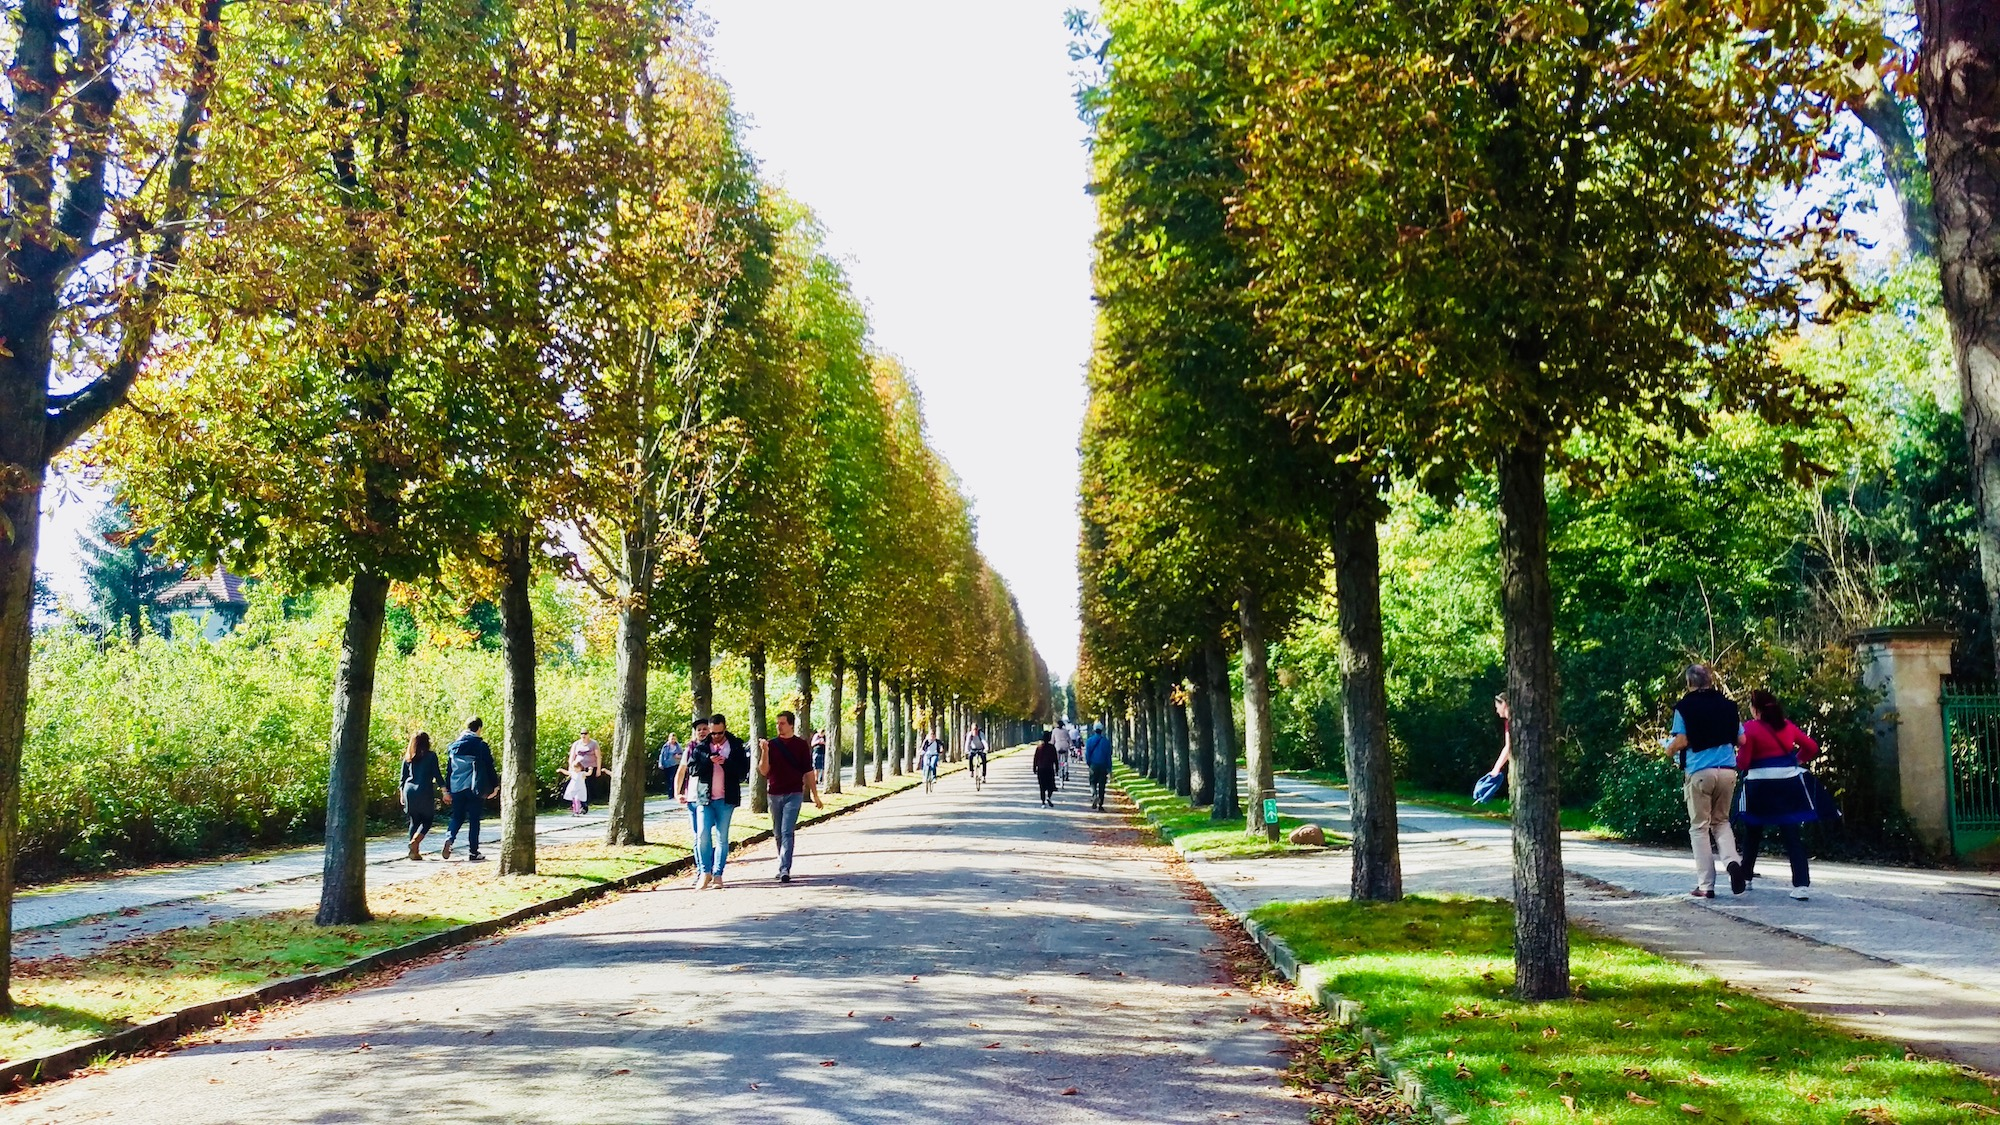 Sanssouci Park is a great place for walking and clearing your mind.